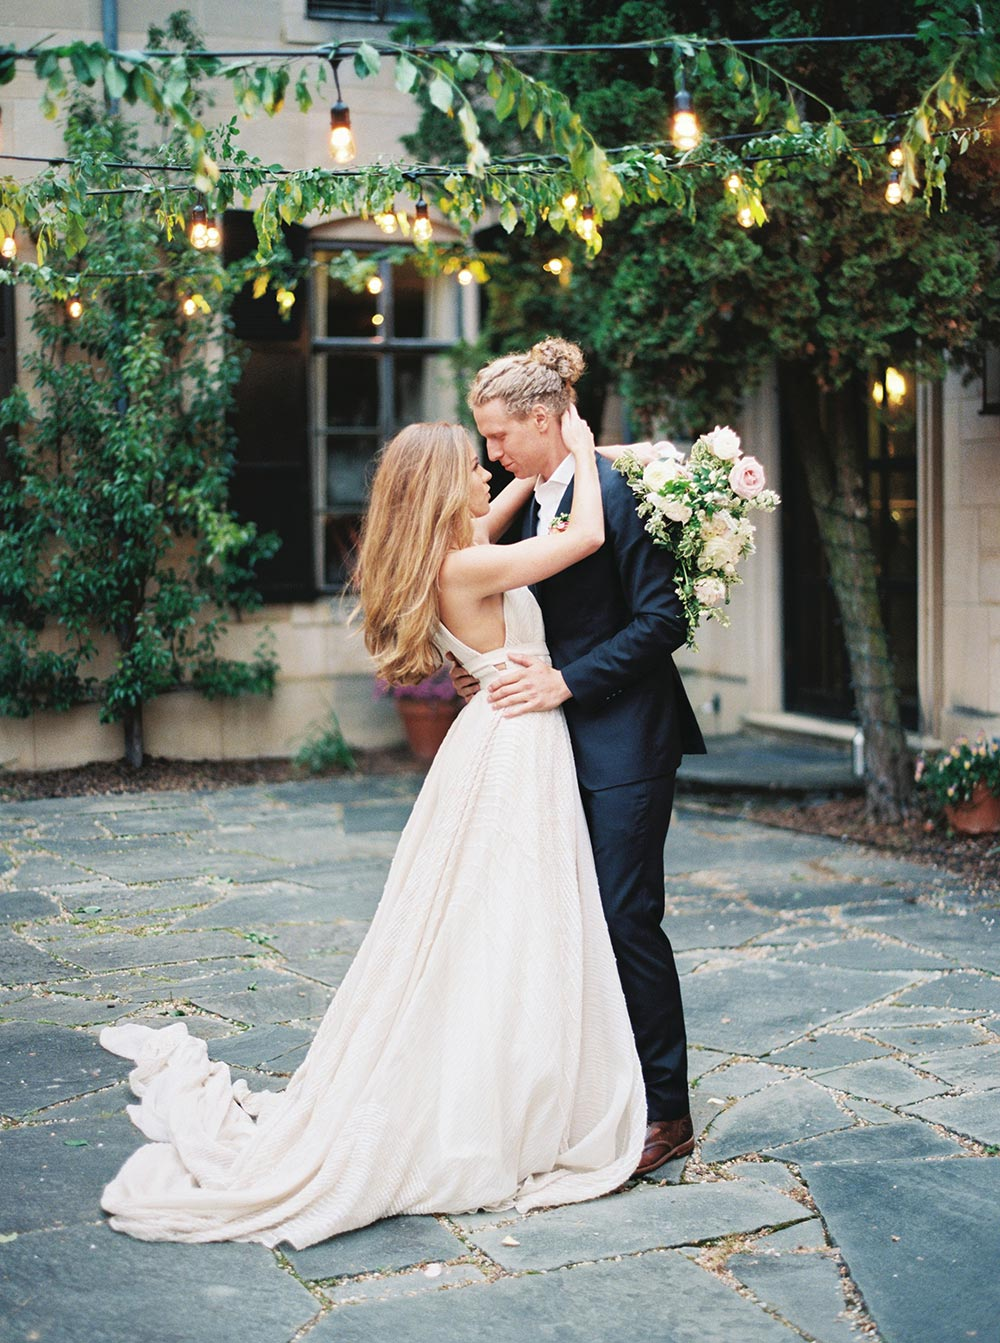 strappy Carol Hannah wedding dress with long train first dance